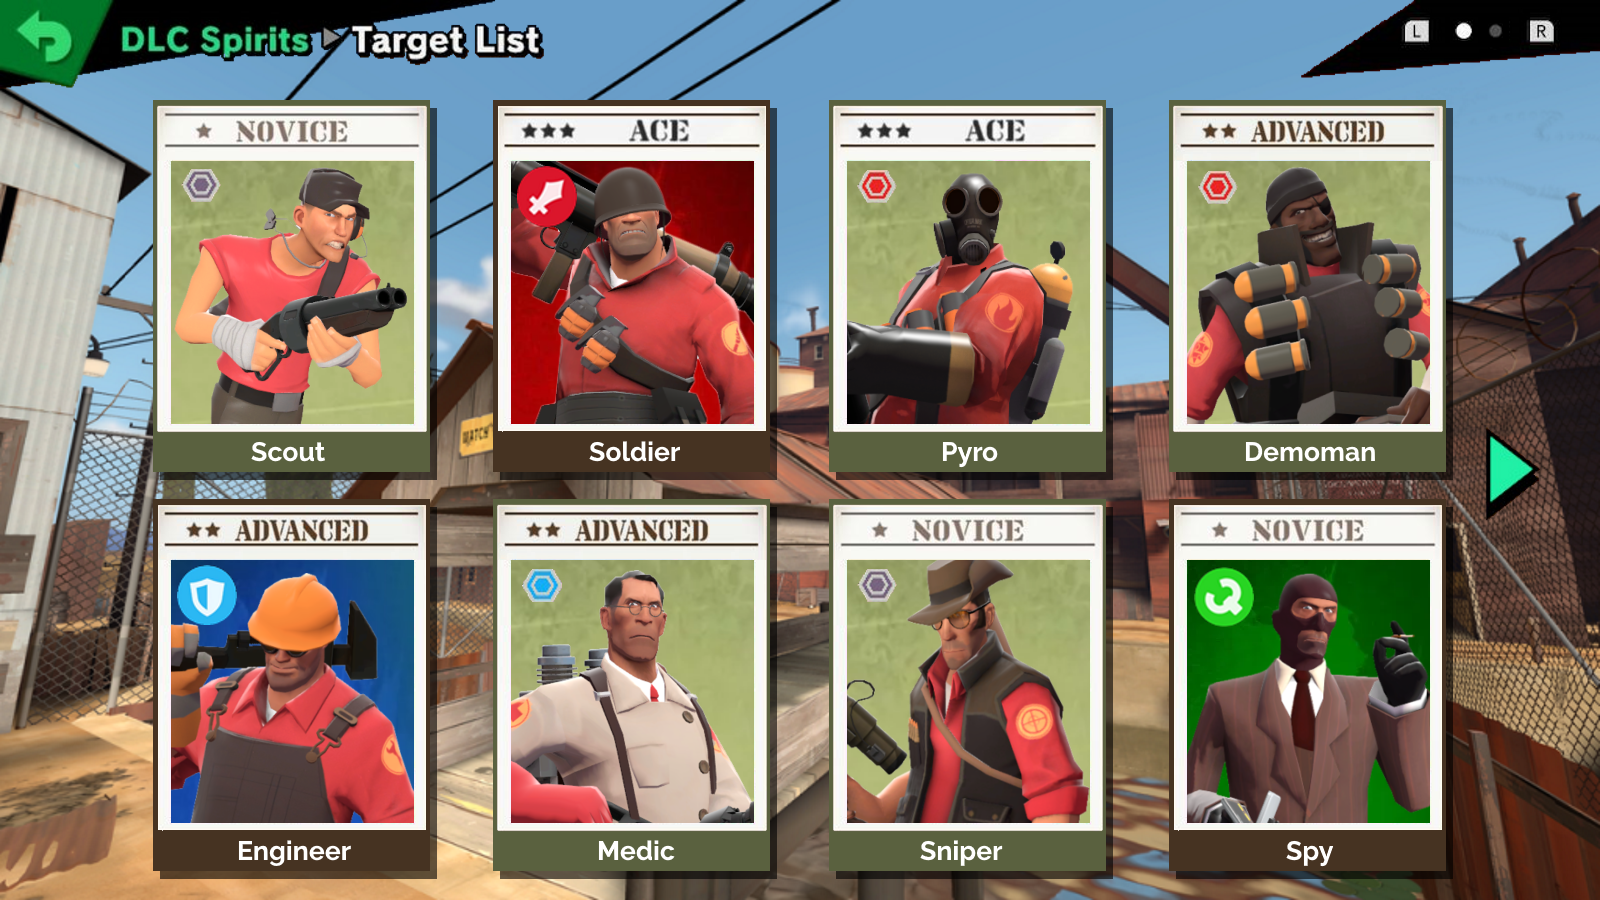 Team Fortress 2 Spirit Board Page 1.png